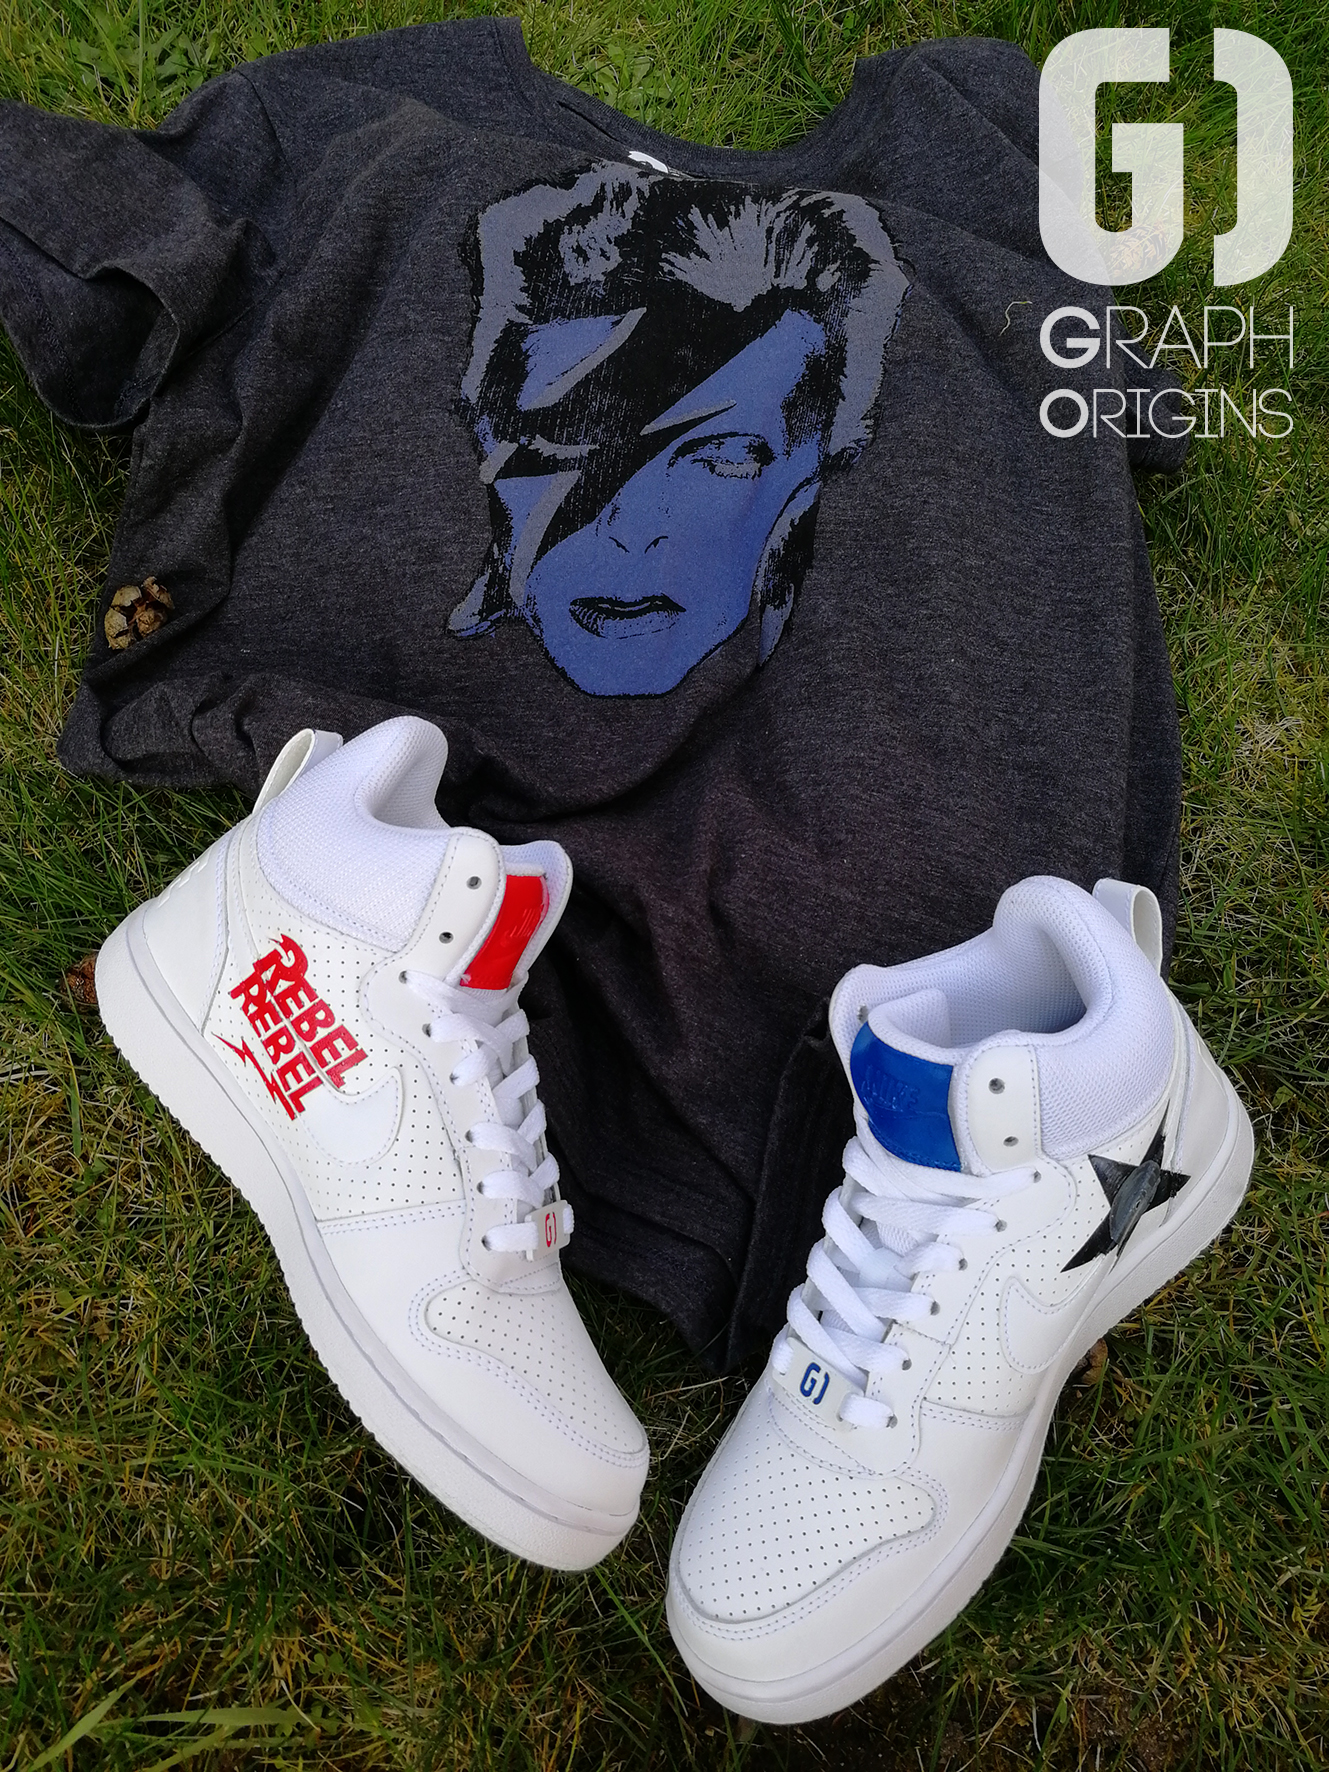 Custom David Bowie sur Nike Court Borough mid Graph Origins 1